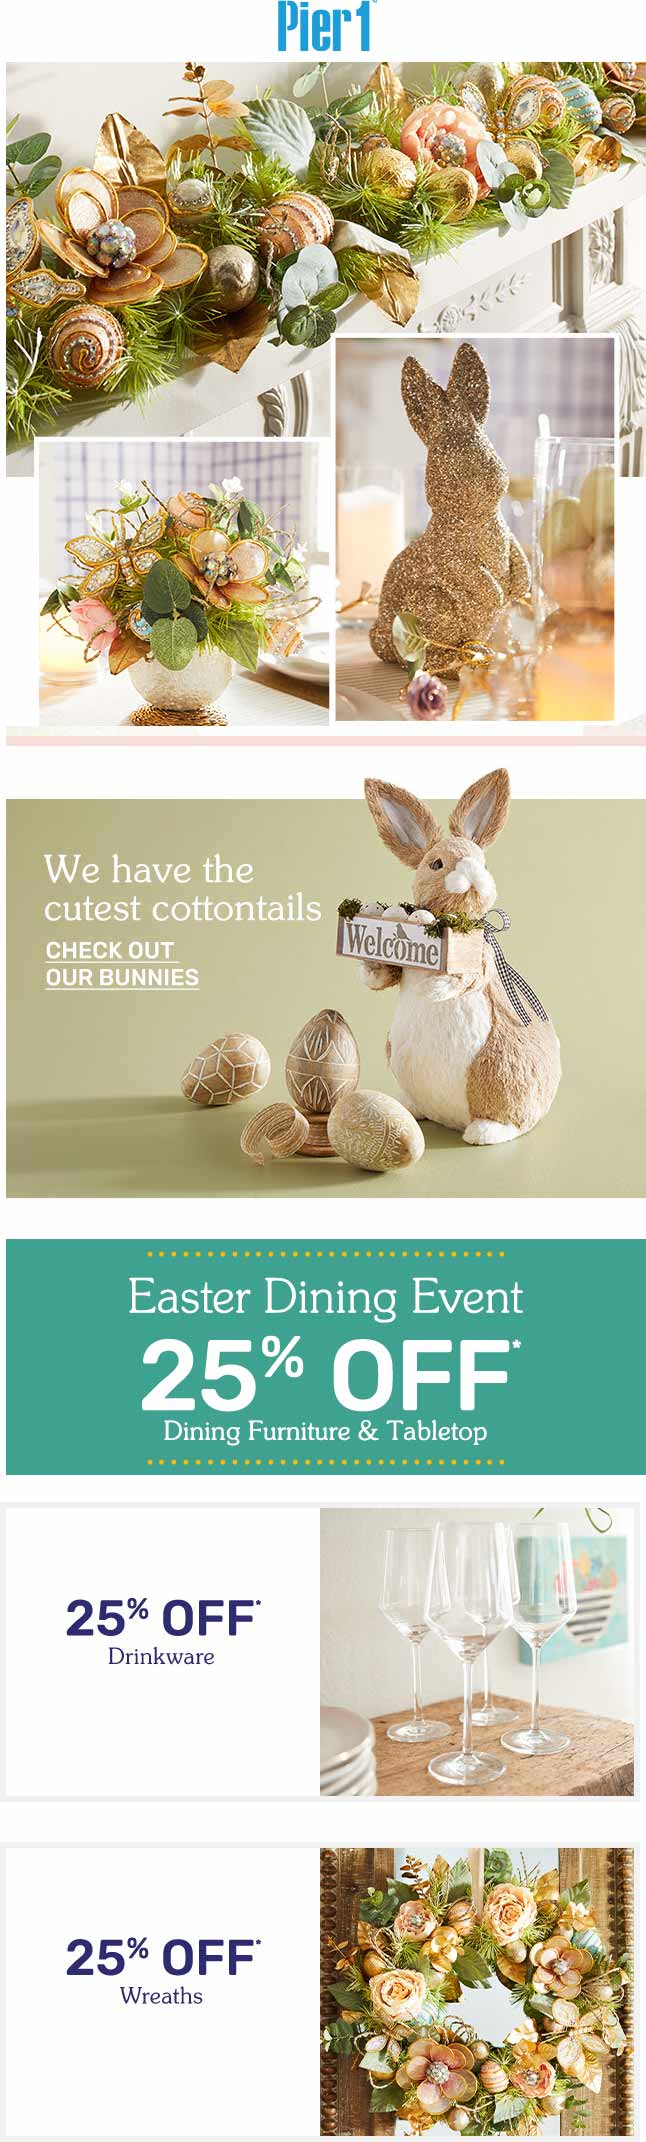 Pier 1 Coupon February 2020 25% off Easter at Pier 1, ditto online